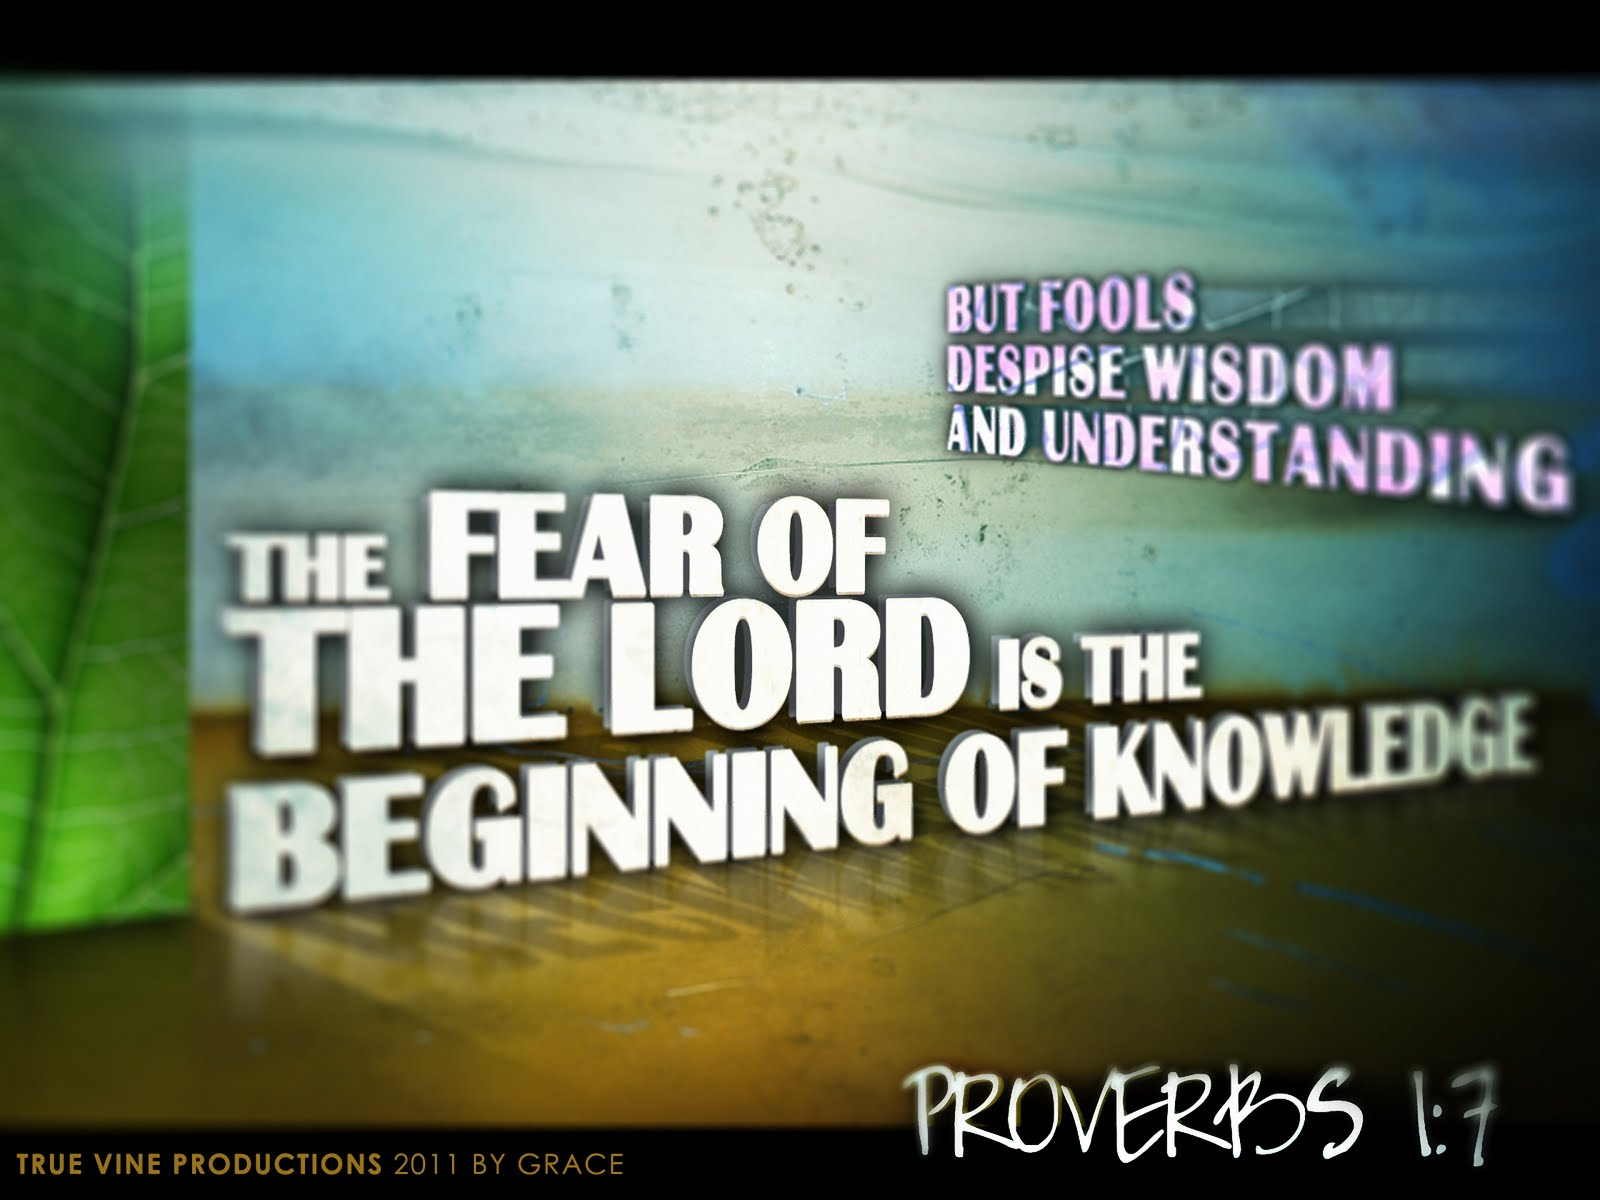 Explanation of Proverbs 7 2 http://www.truevined.com/2011/10/fearing-god-is-wisdom.html